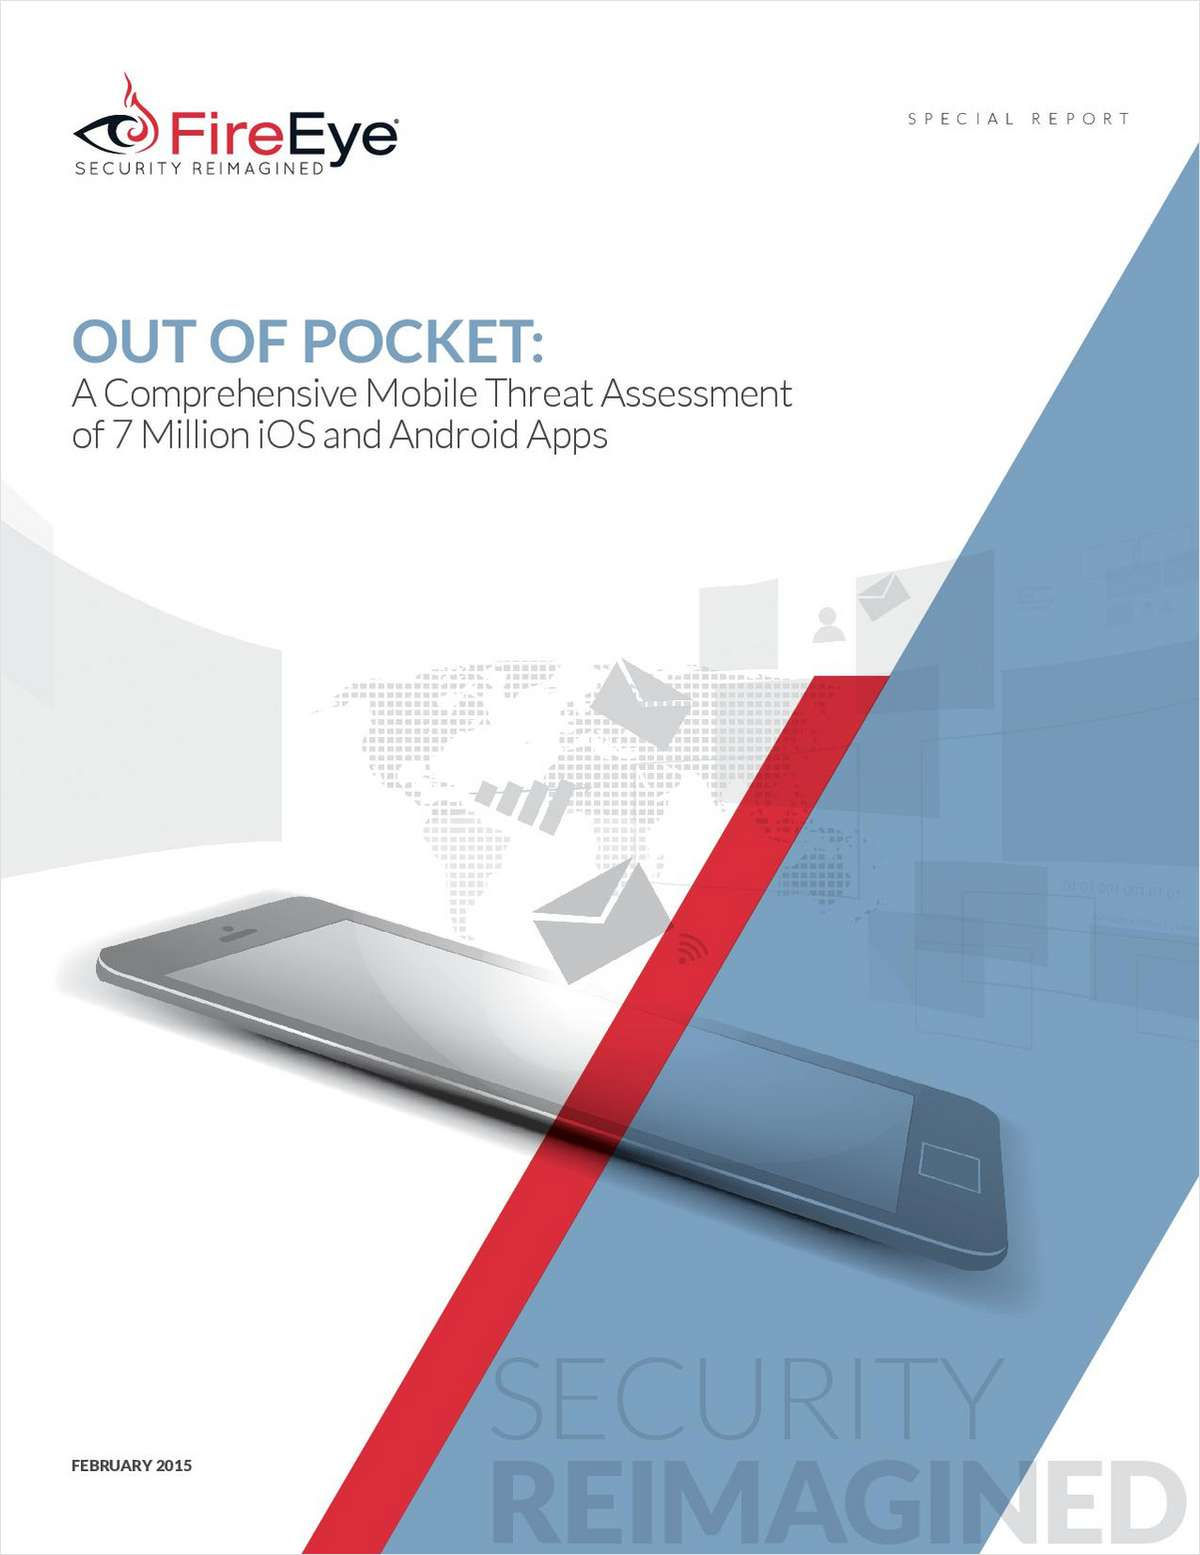 A Comprehensive Mobile Threat Assessment